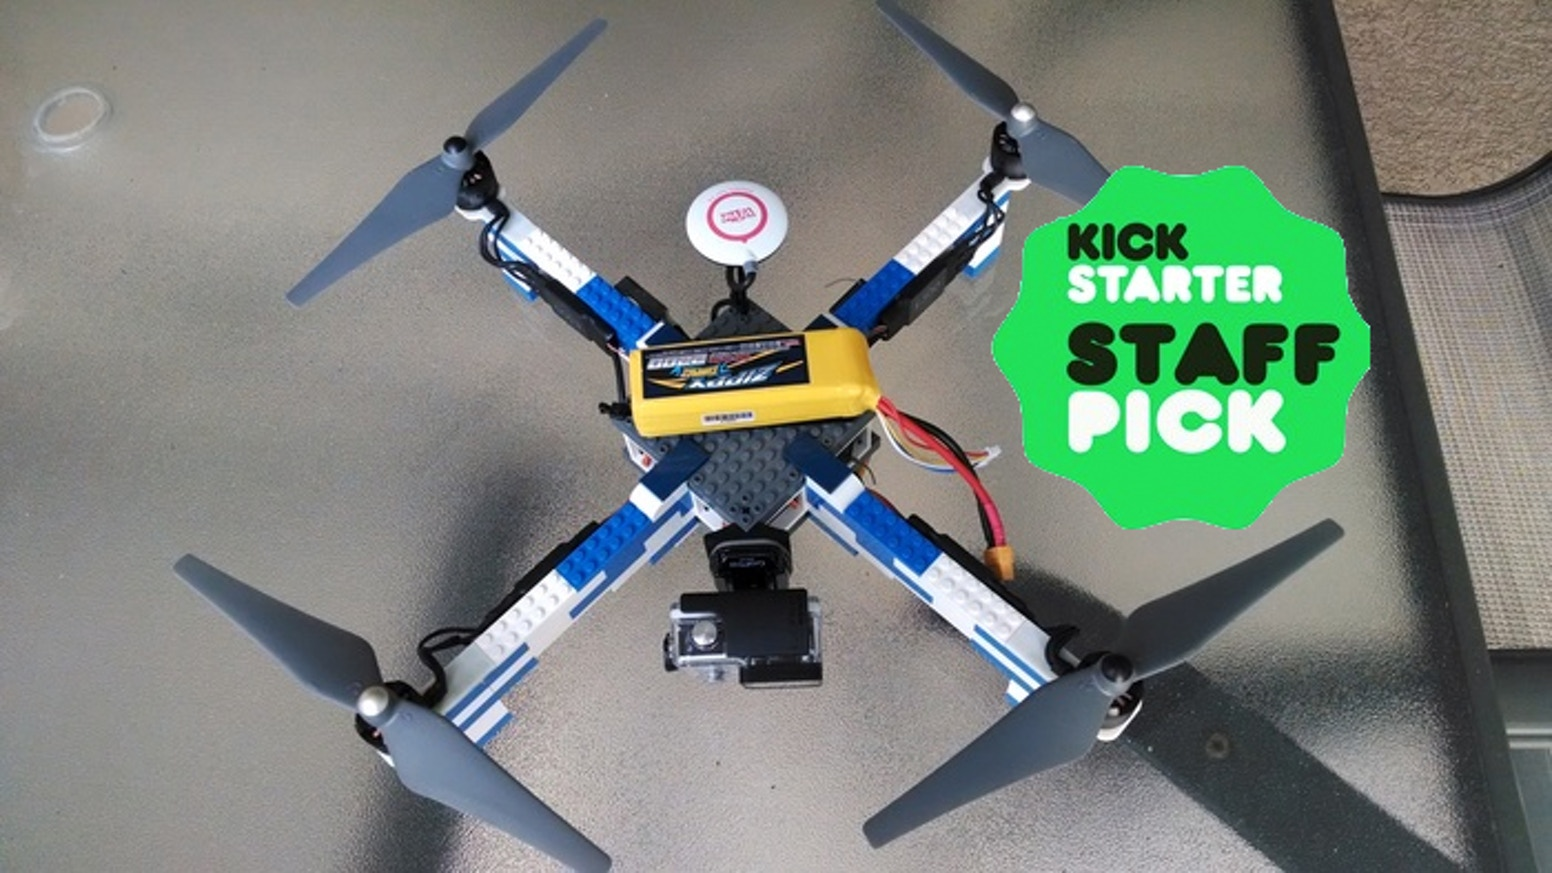 Lego Brick Drone Frame By Gencode Systems Inc Nick Has Improved